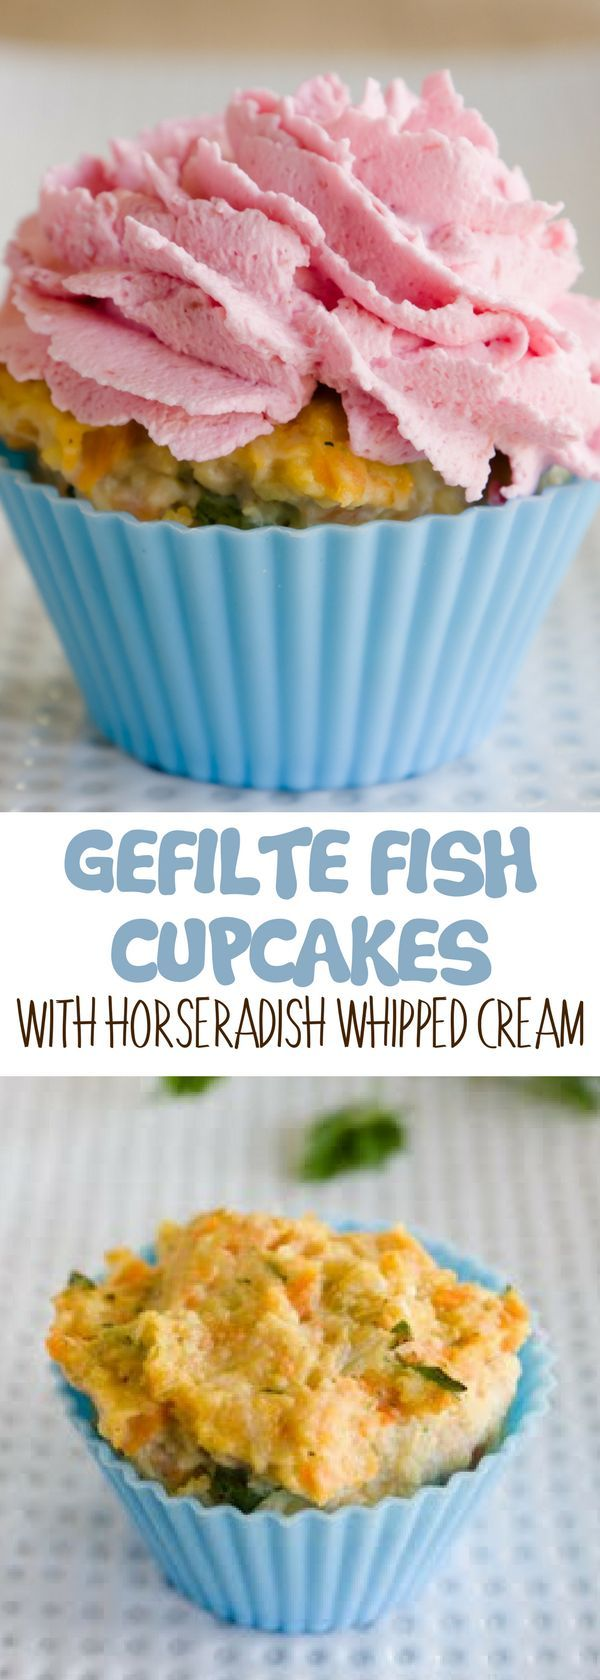 "Sweet cupcakes recipes? This Gefilte Fish Cupcakes with Horseradish Whipped Cream are not typical sweet cupcakes.  The smell of fish and onions will do all of the talking for you.  An adorable cupcake shape, however, might be just the hook that gefilte ""fish"" needs to be the catch of your Seder. For more simple baking desserts recipes and homemade sweet treats, check us out at #cupcakeproject. #desserts #yummydesserts #recipeoftheday #sweettooth"